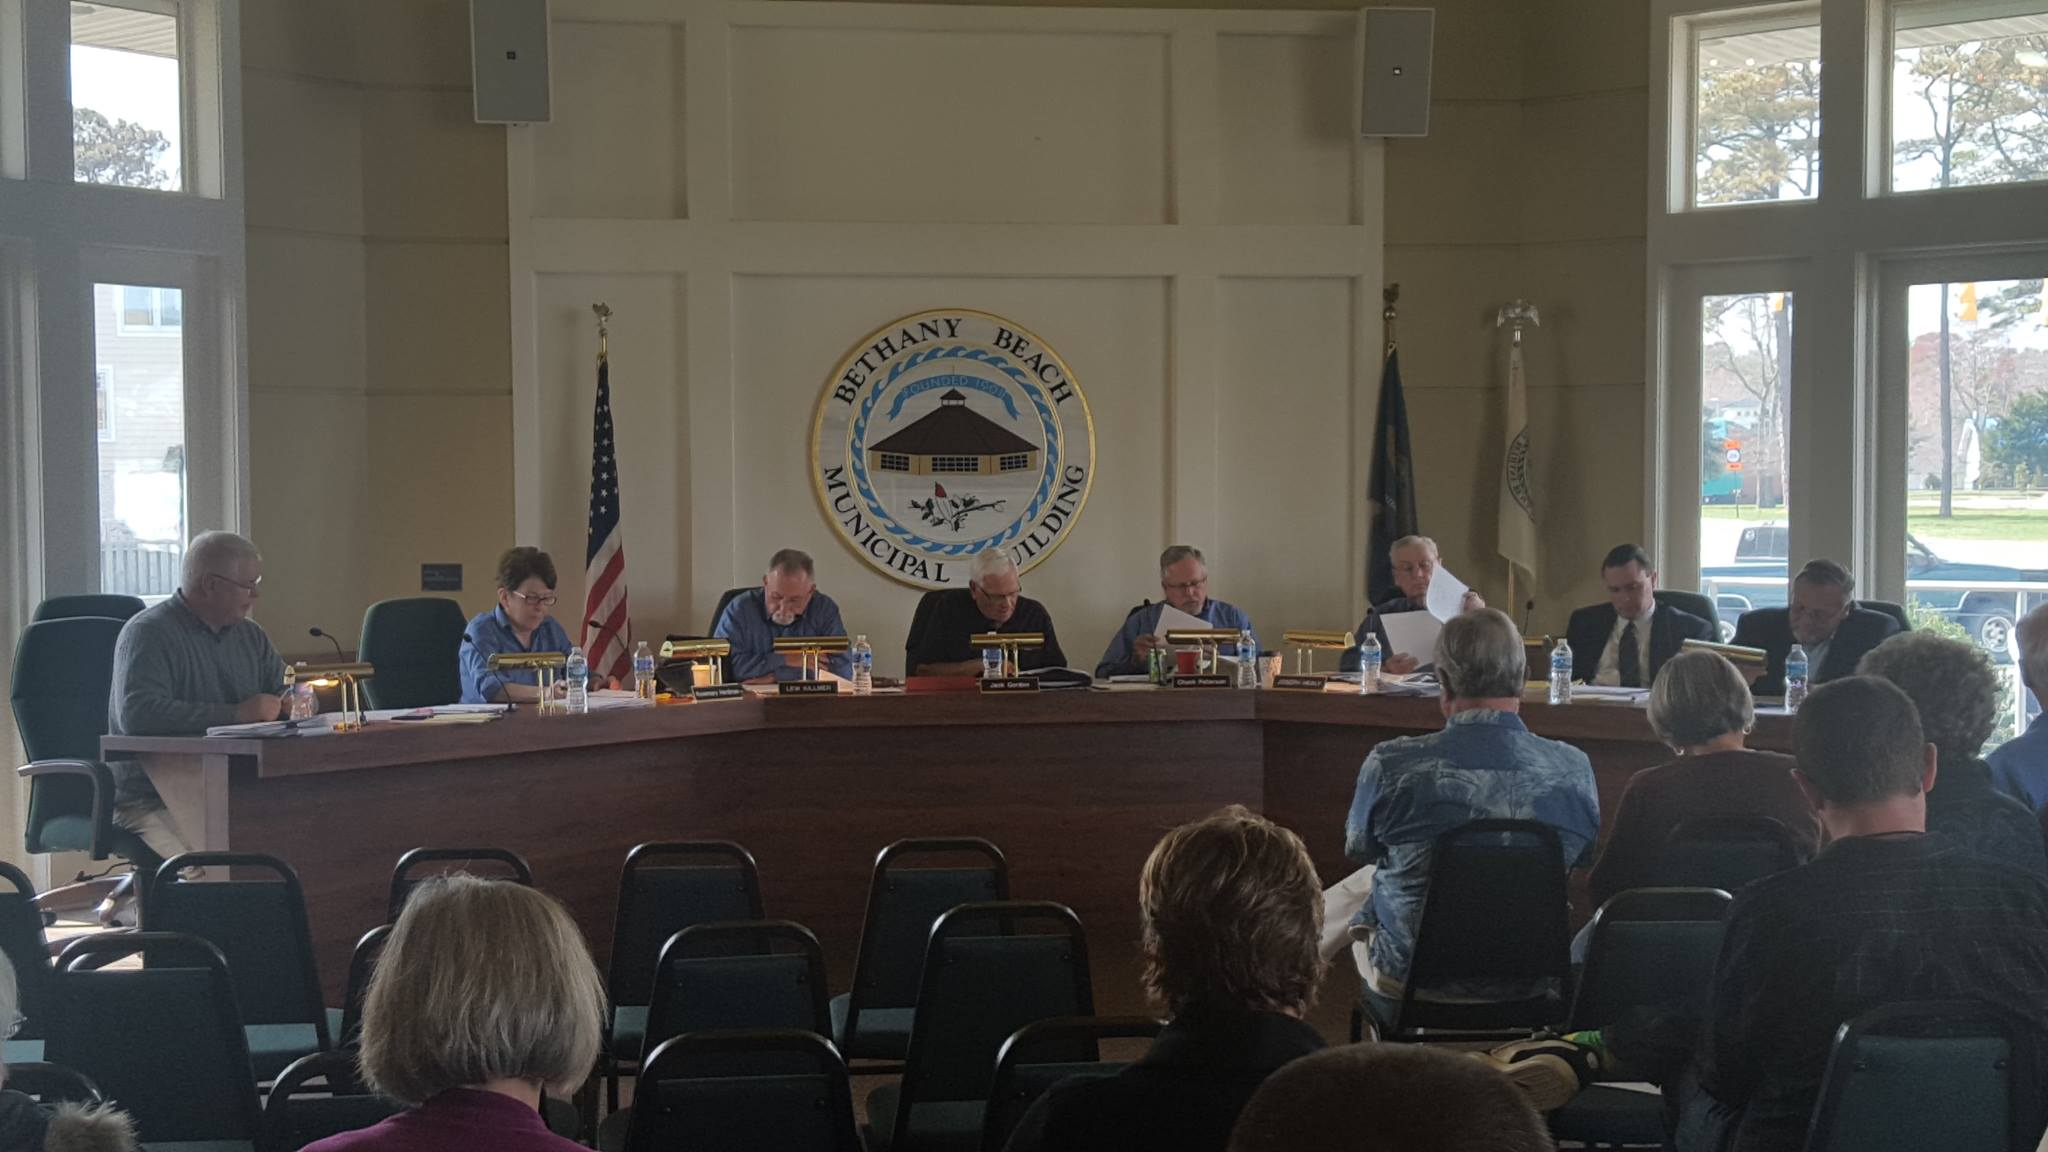 bethany beach town council, delaware, sussex county, dont drill my coast, seismic testing,